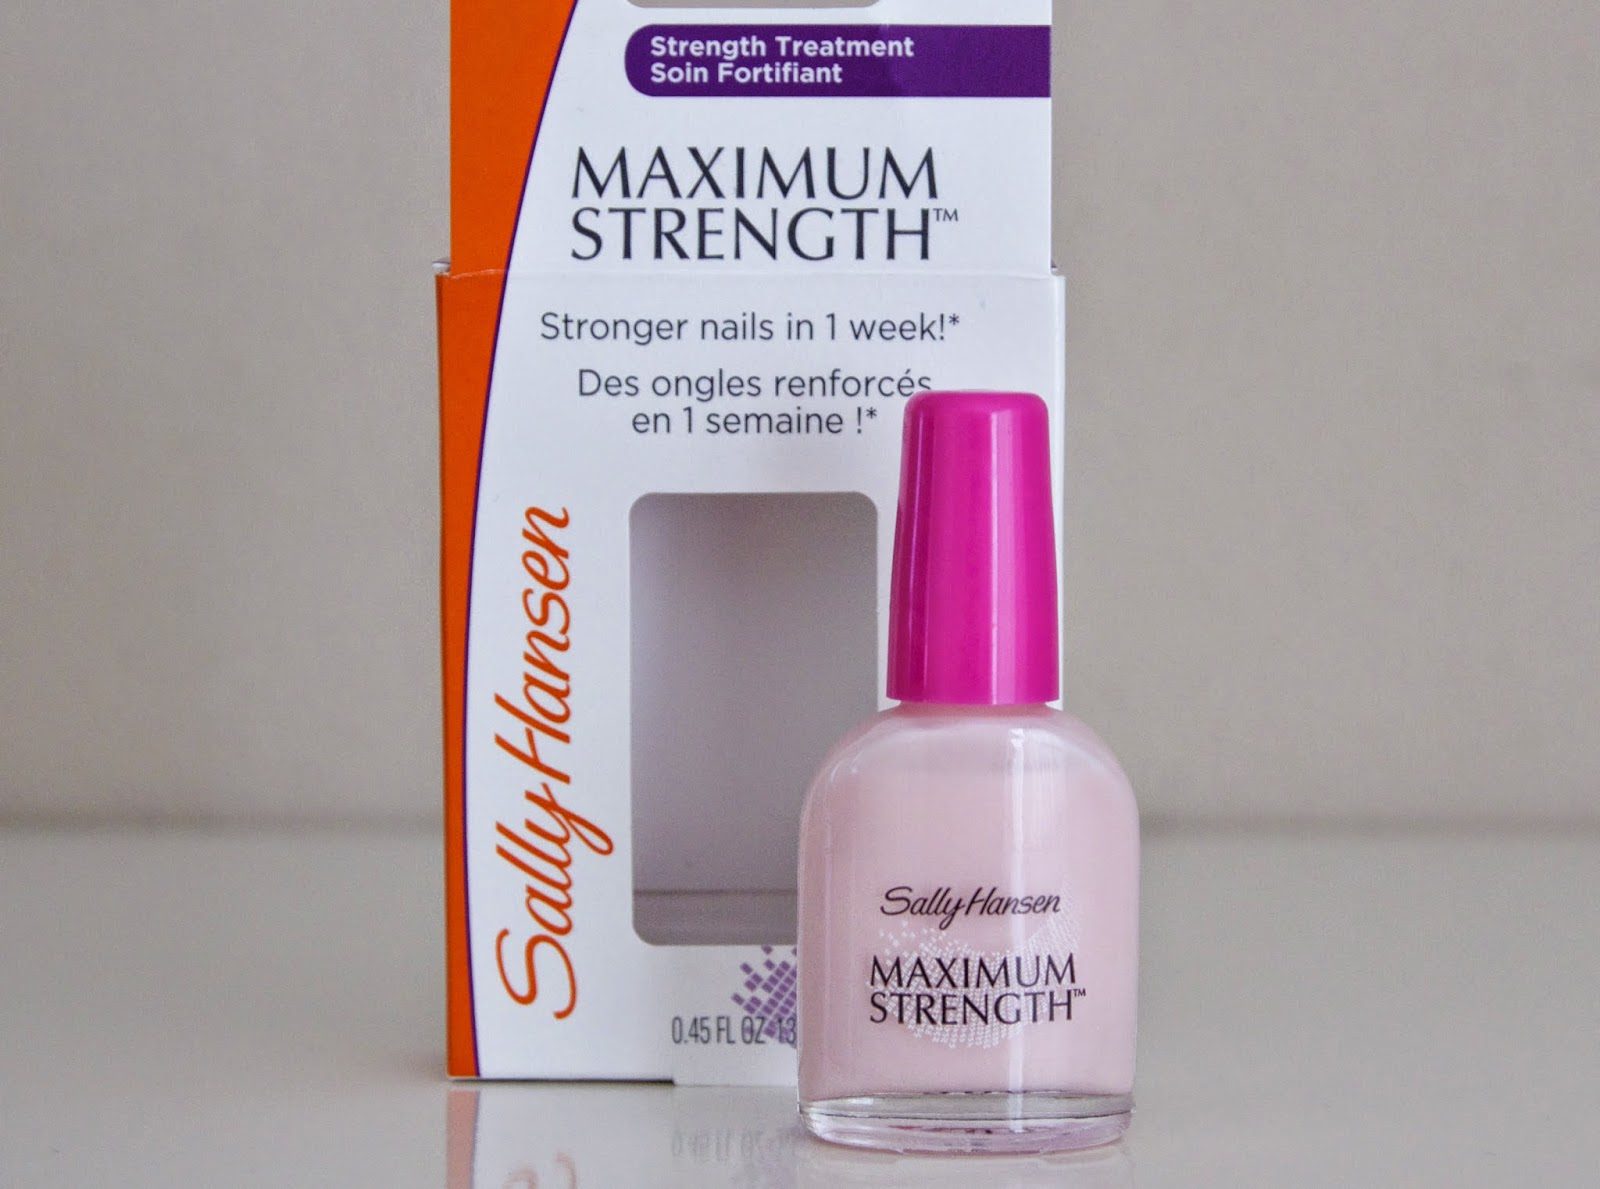 NAIL SAVIOUR SALLY HANSEN MAXIMUM STRENGTH review chippende nagels zwakke sterke nagels nagel redding